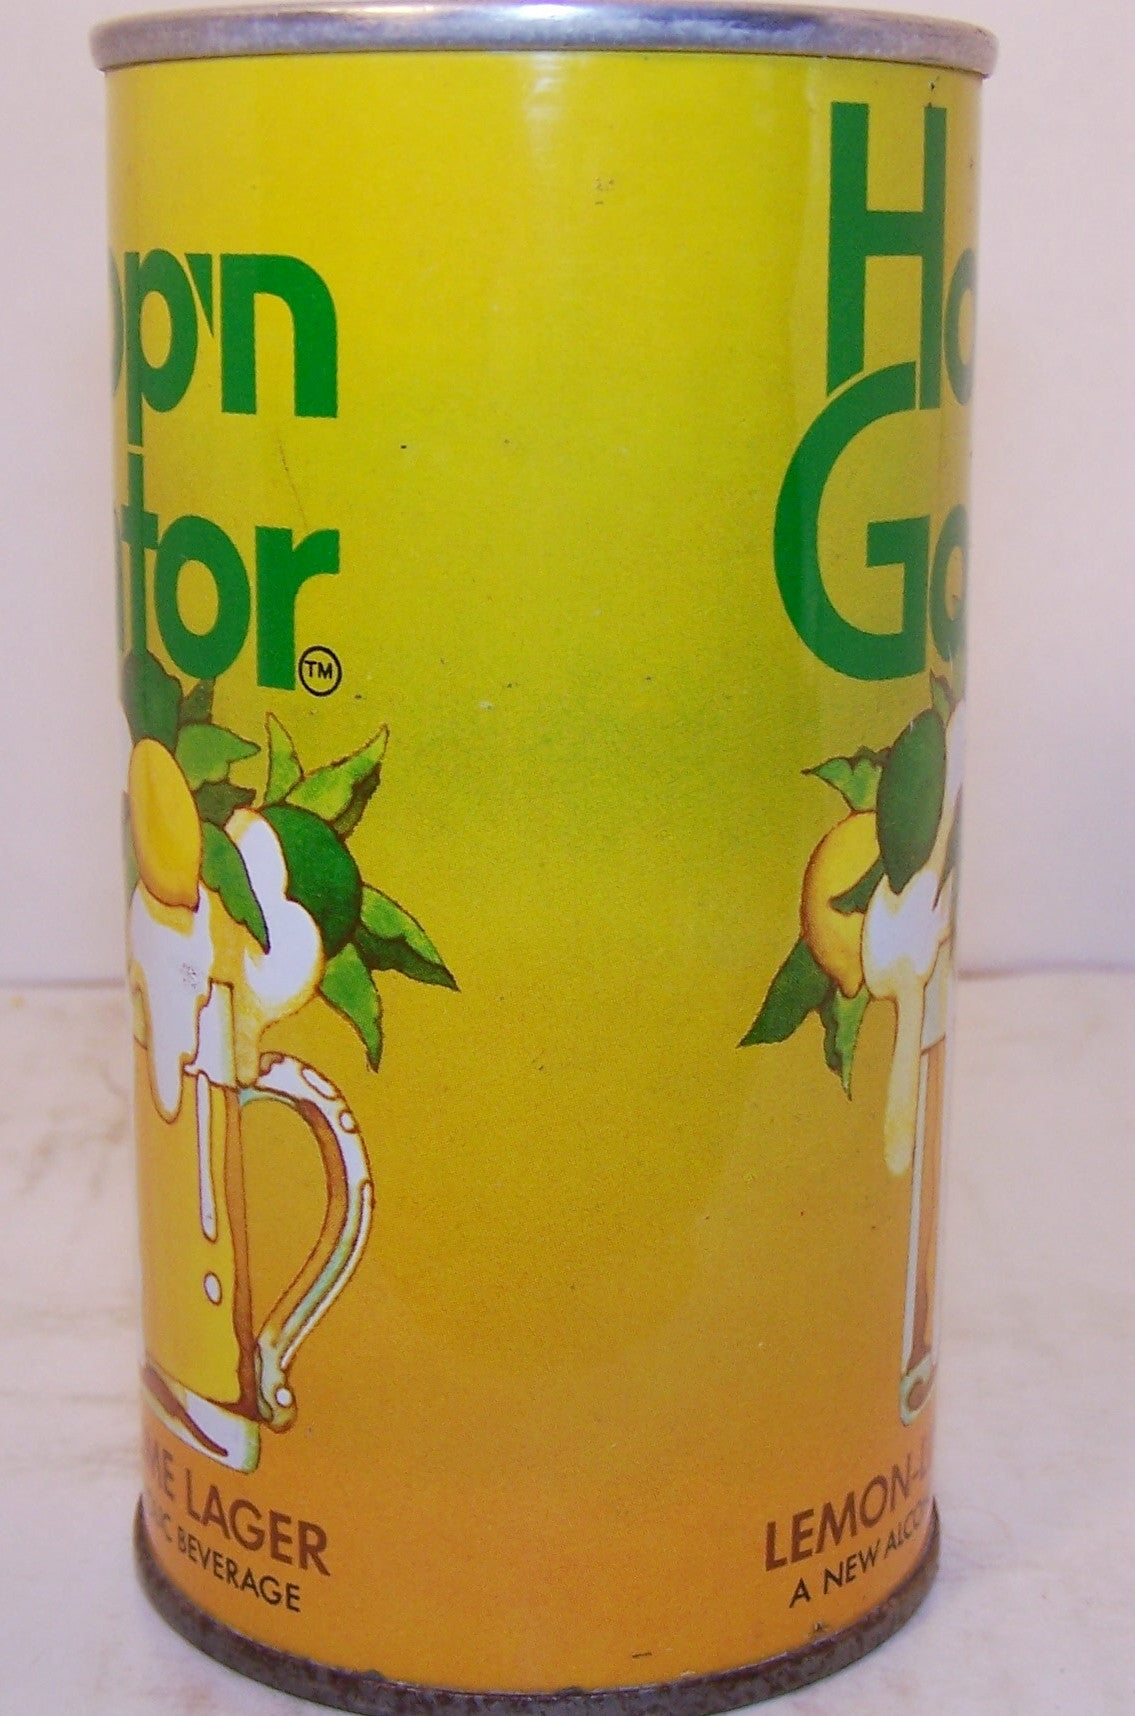 Hop'n Gator Lemon-Lime Lager, USBC II 77-13, grade 1/1+ Sold on 09/15/16